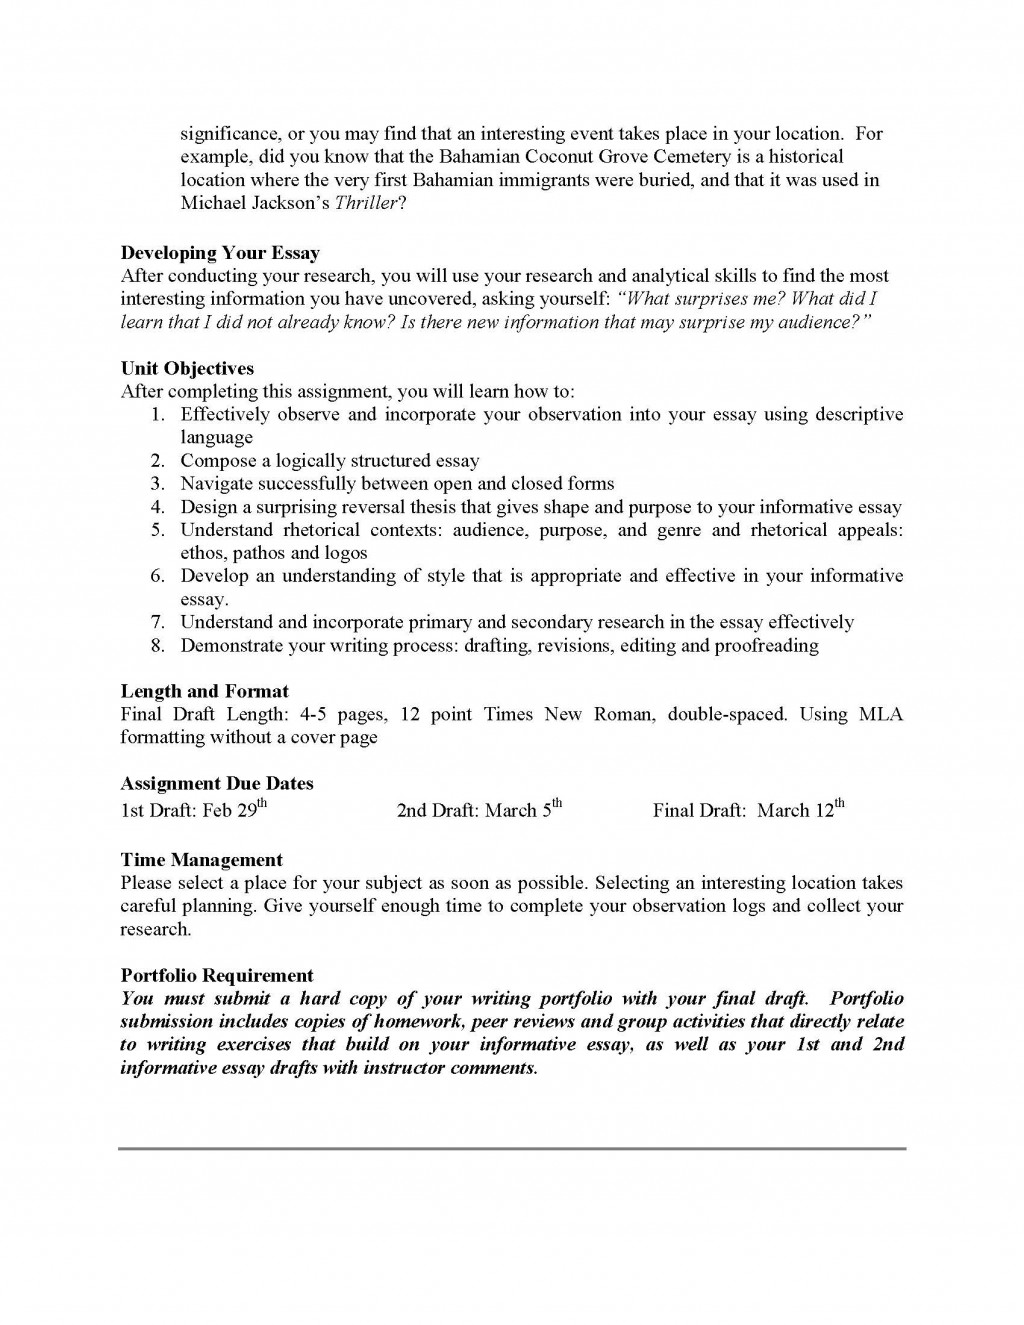 011 Essay Example Informational Informative Unit Assignment Page 2 Unforgettable Rubric 4th Grade Outline Explanatory Definition Large